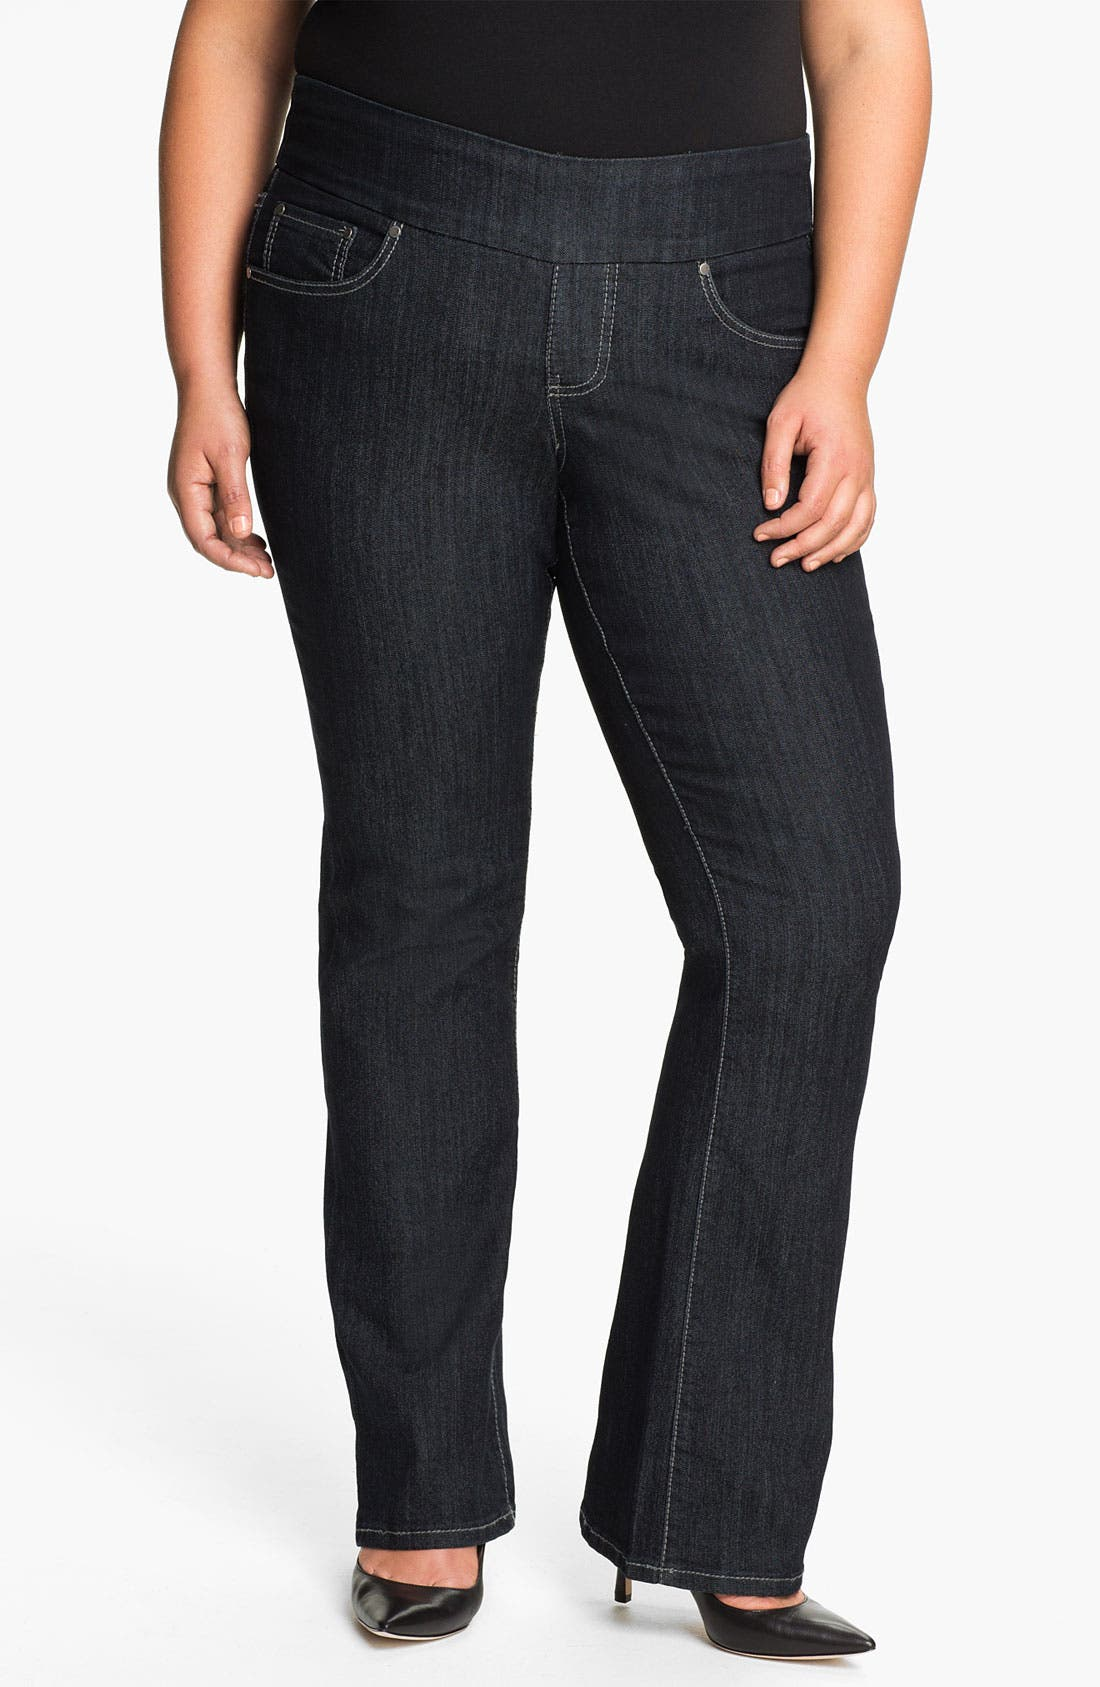 Alternate Image 1 Selected - Jag Jeans 'Holland' Bootcut Jeans (Plus)